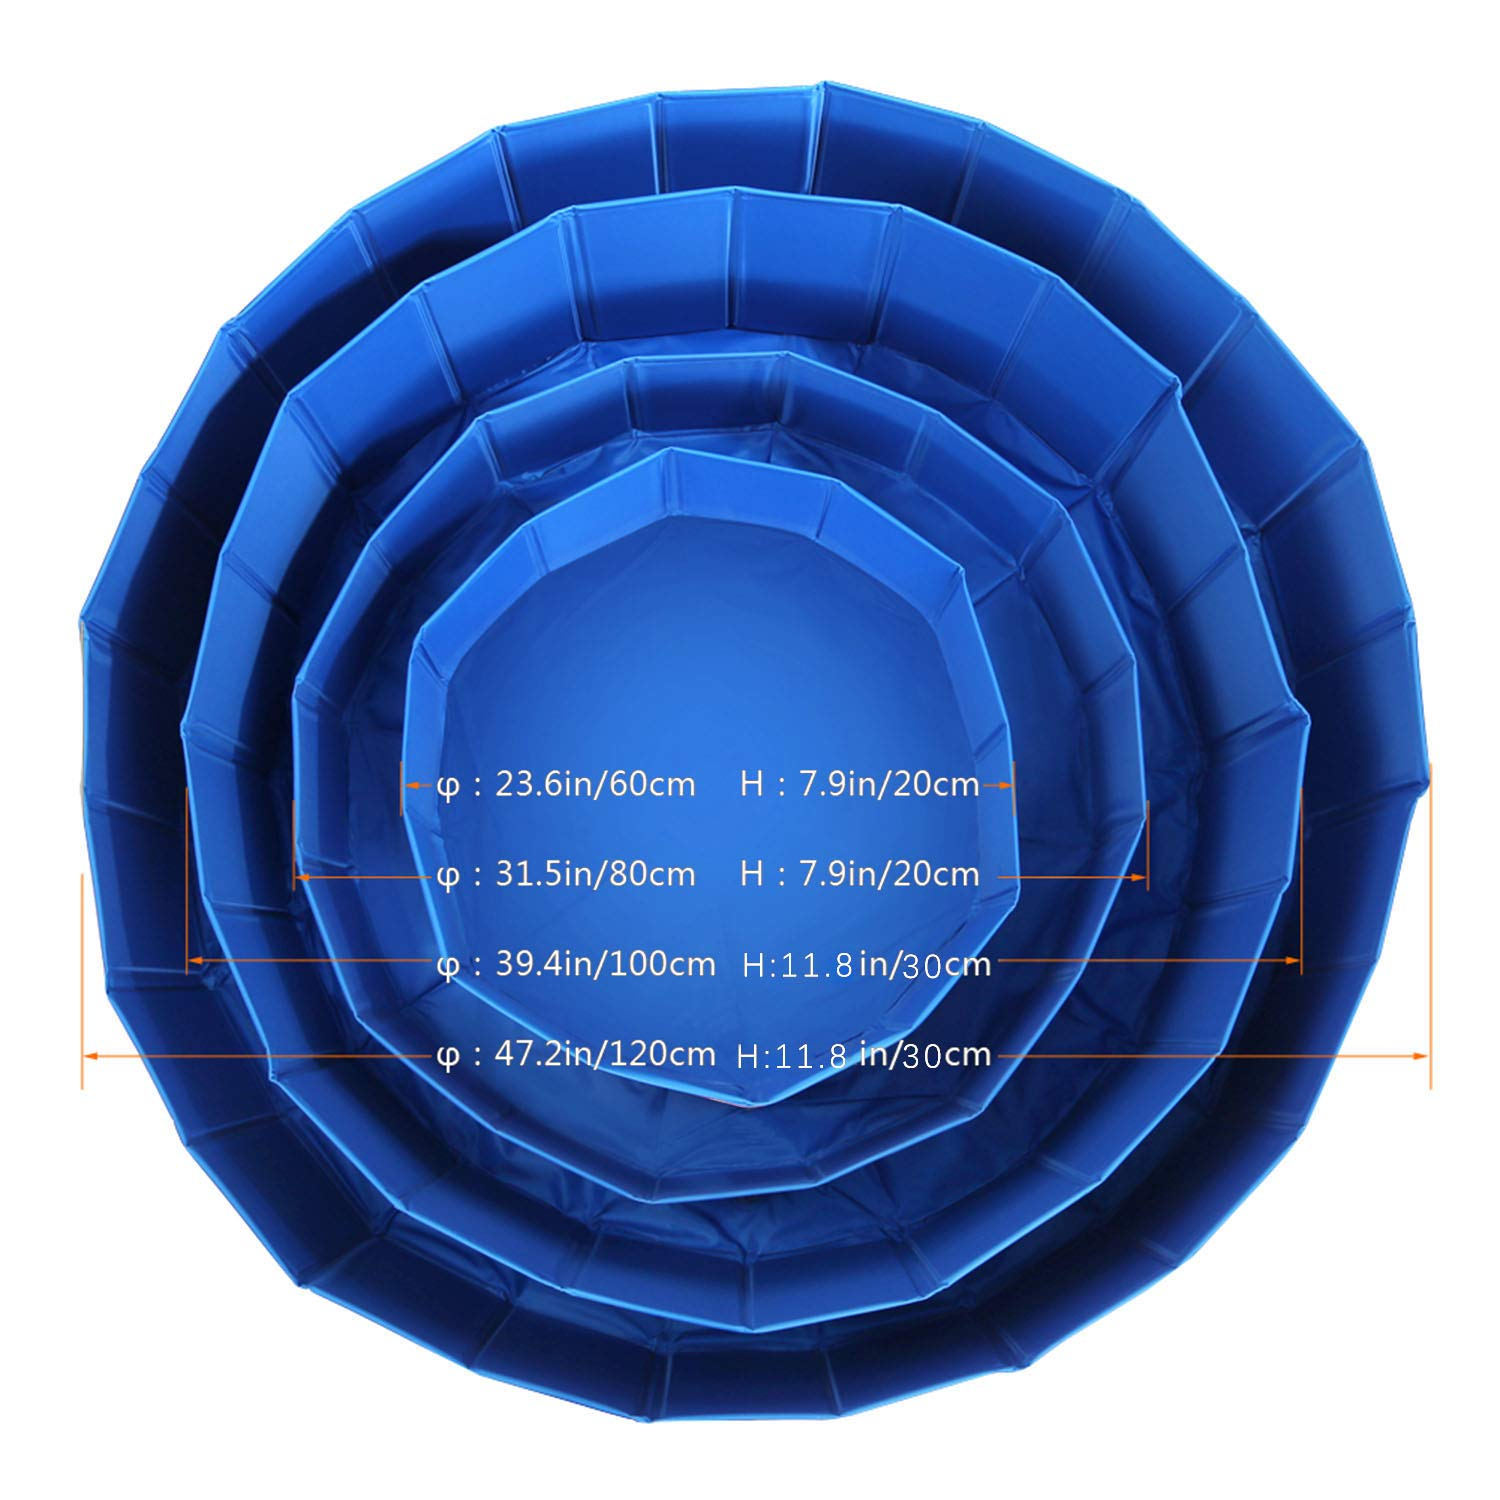 Fuloon Foldable Dog Paddling Pool Puppy Cats Swimming Bathing Tub Pet Children Kid Ball Water Ponds by Fuloon (Image #6)